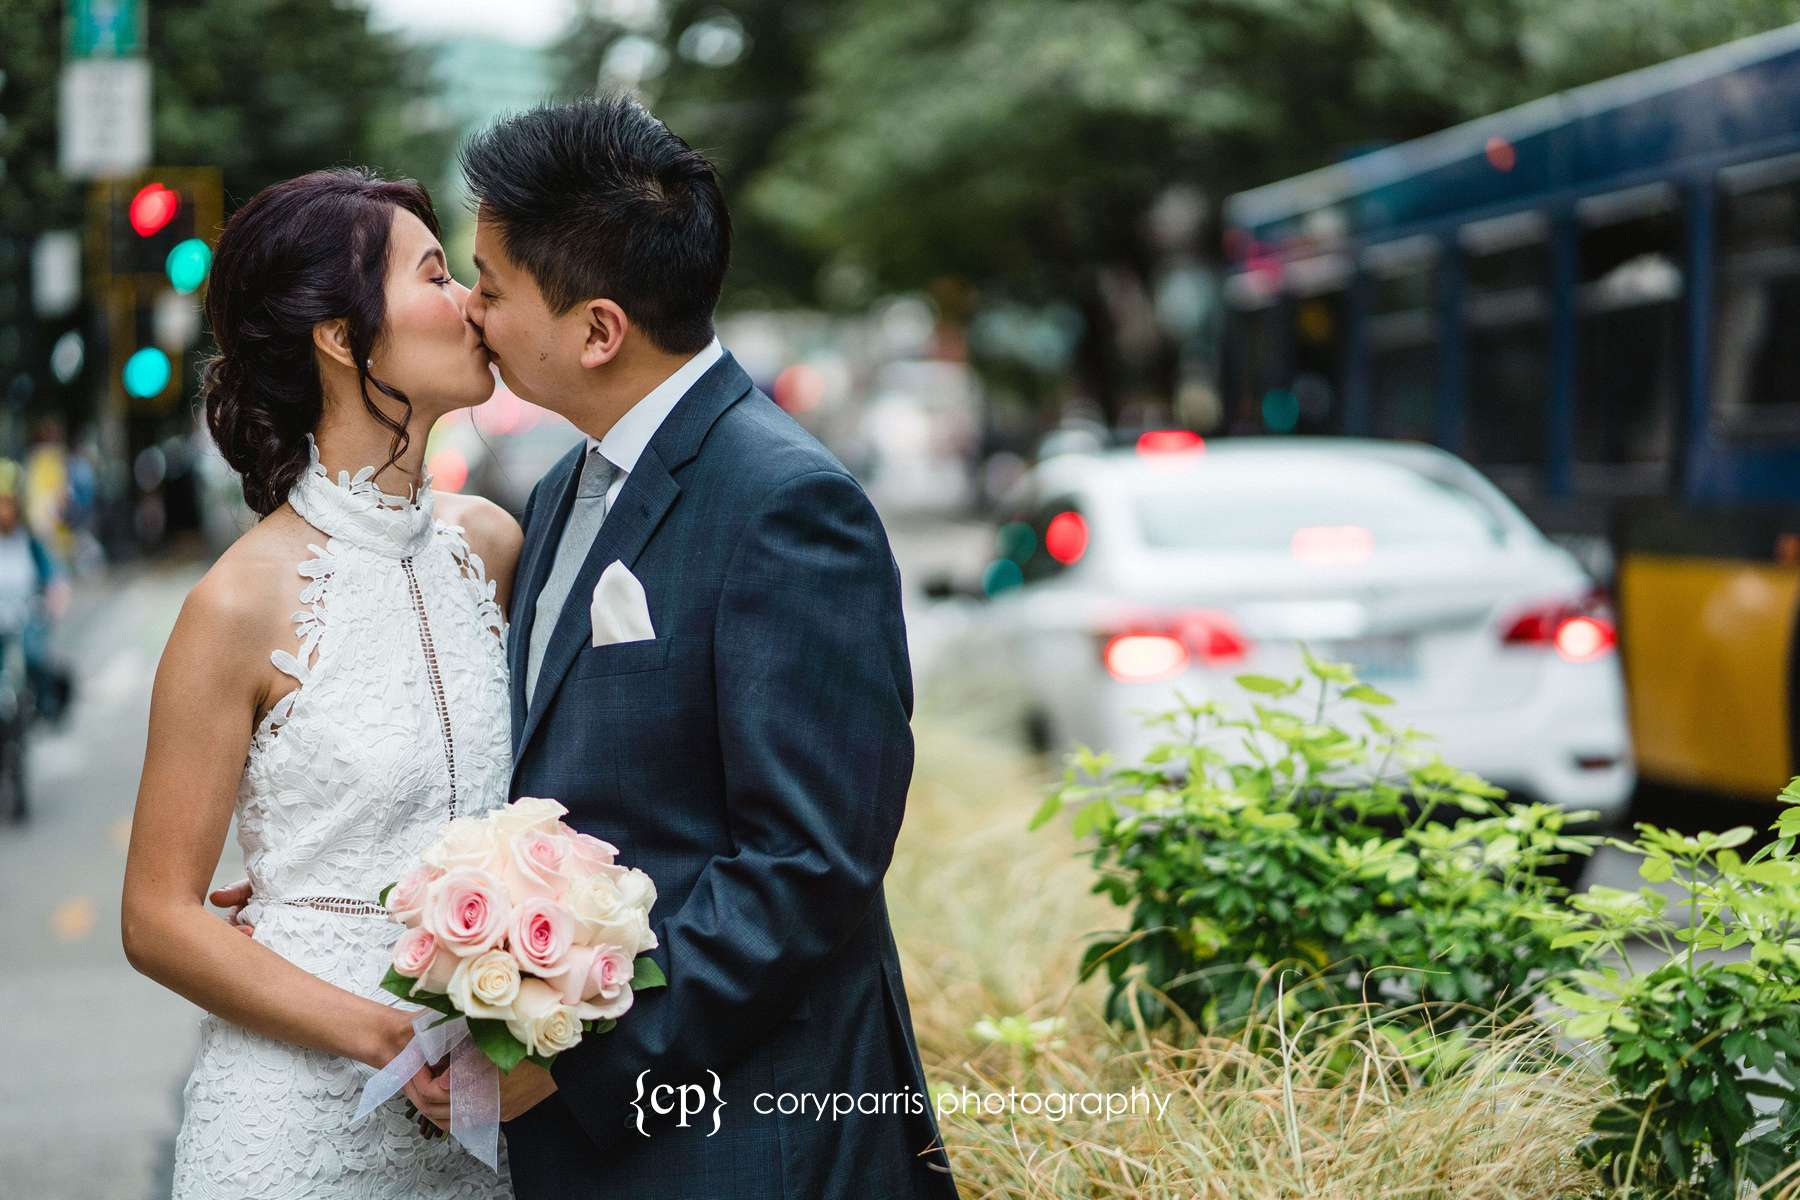 Cindy and Alex's portrait on the streets of Seattle after their elopement at the Seattle Courthouse